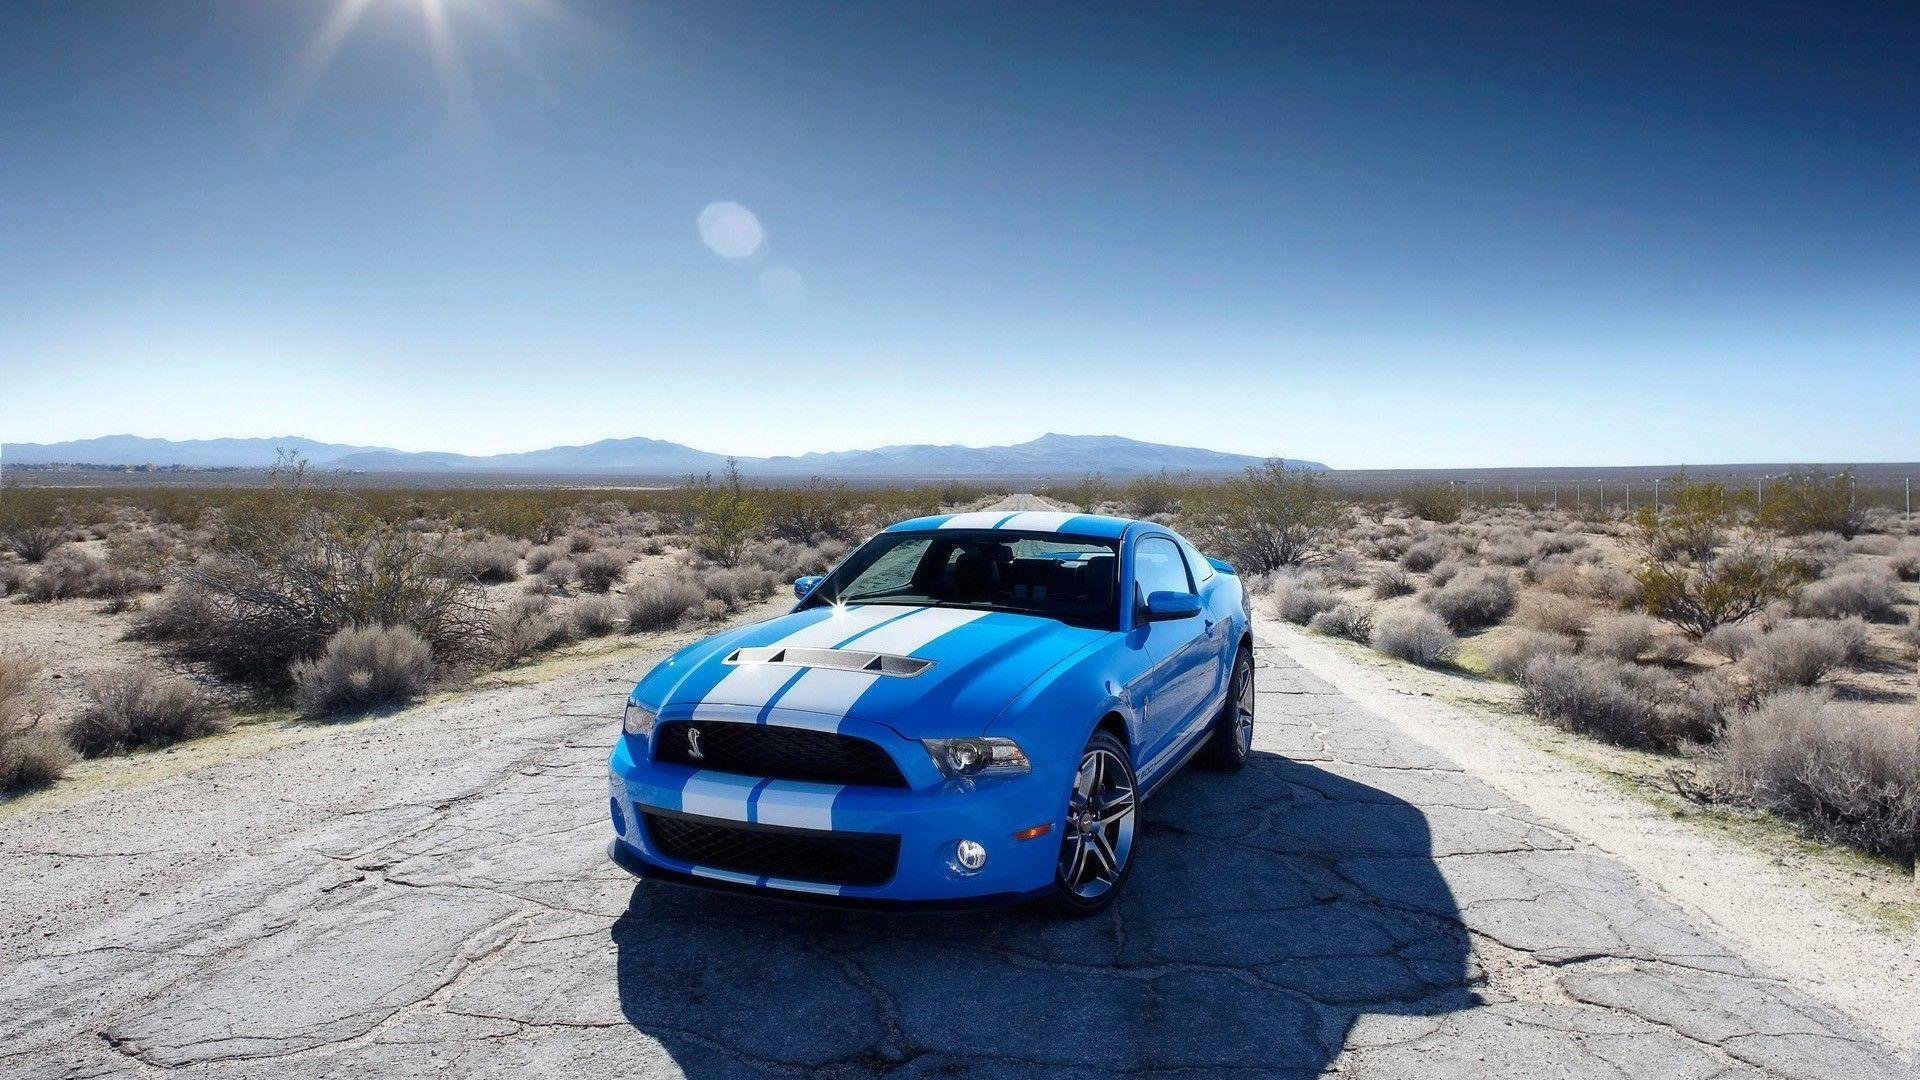 Cool Ford Mustang Sports Cars HD Wallpaper of Car ...